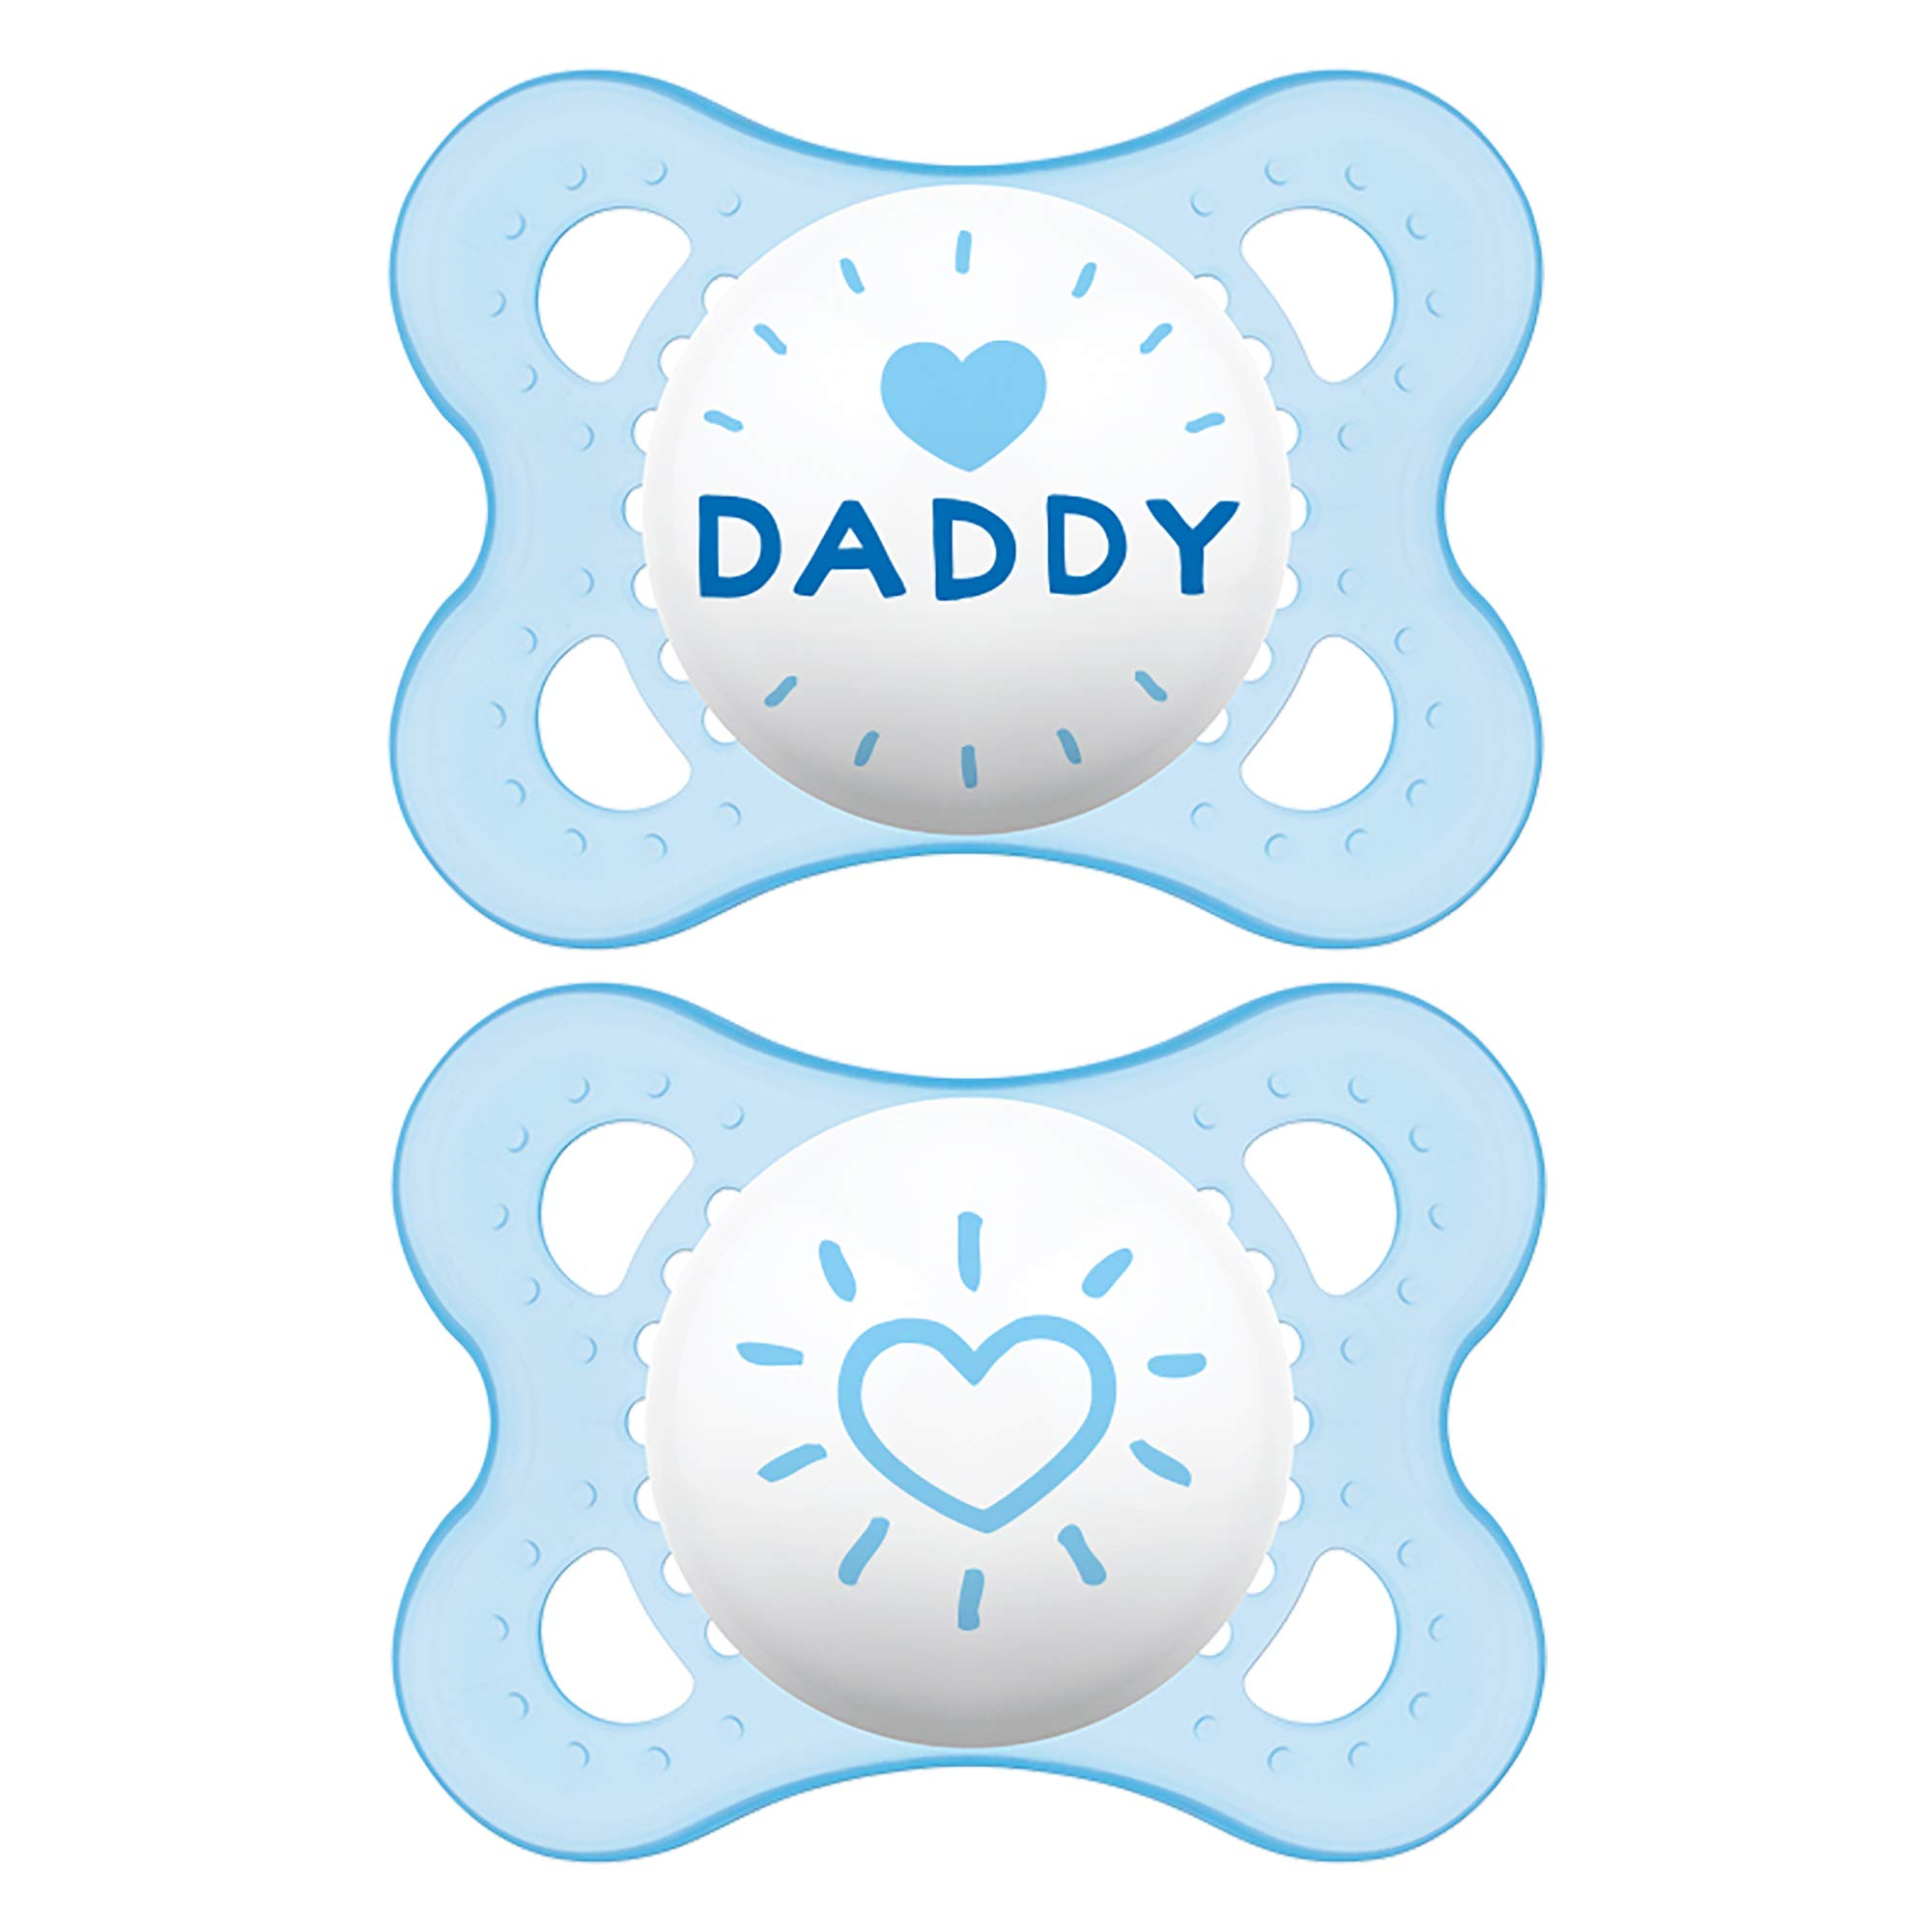 MAM I Love Daddy Collection Pacifiers (2 pack, 1 Sterilizing Pacifier Case), MAM Pacifier 0-6 Months, Baby Boy Pacifier, Best Pacifier for Breastfed Babies, Designs May Vary